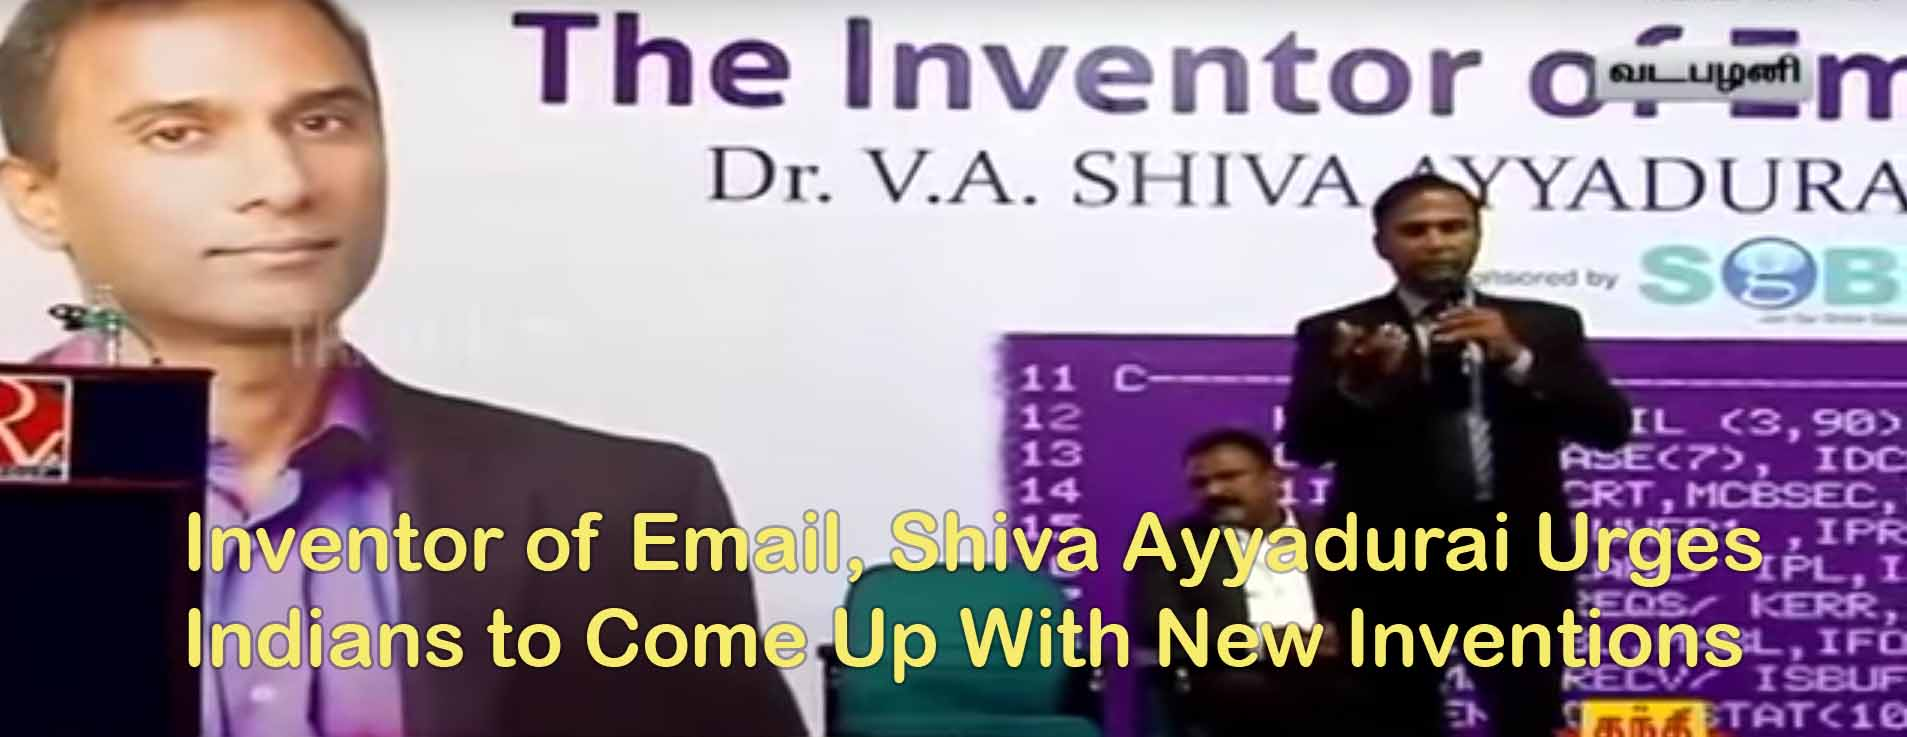 Inventor Of Email, Shiva Ayyadurai Urges Indians To Come Up With New Inventions